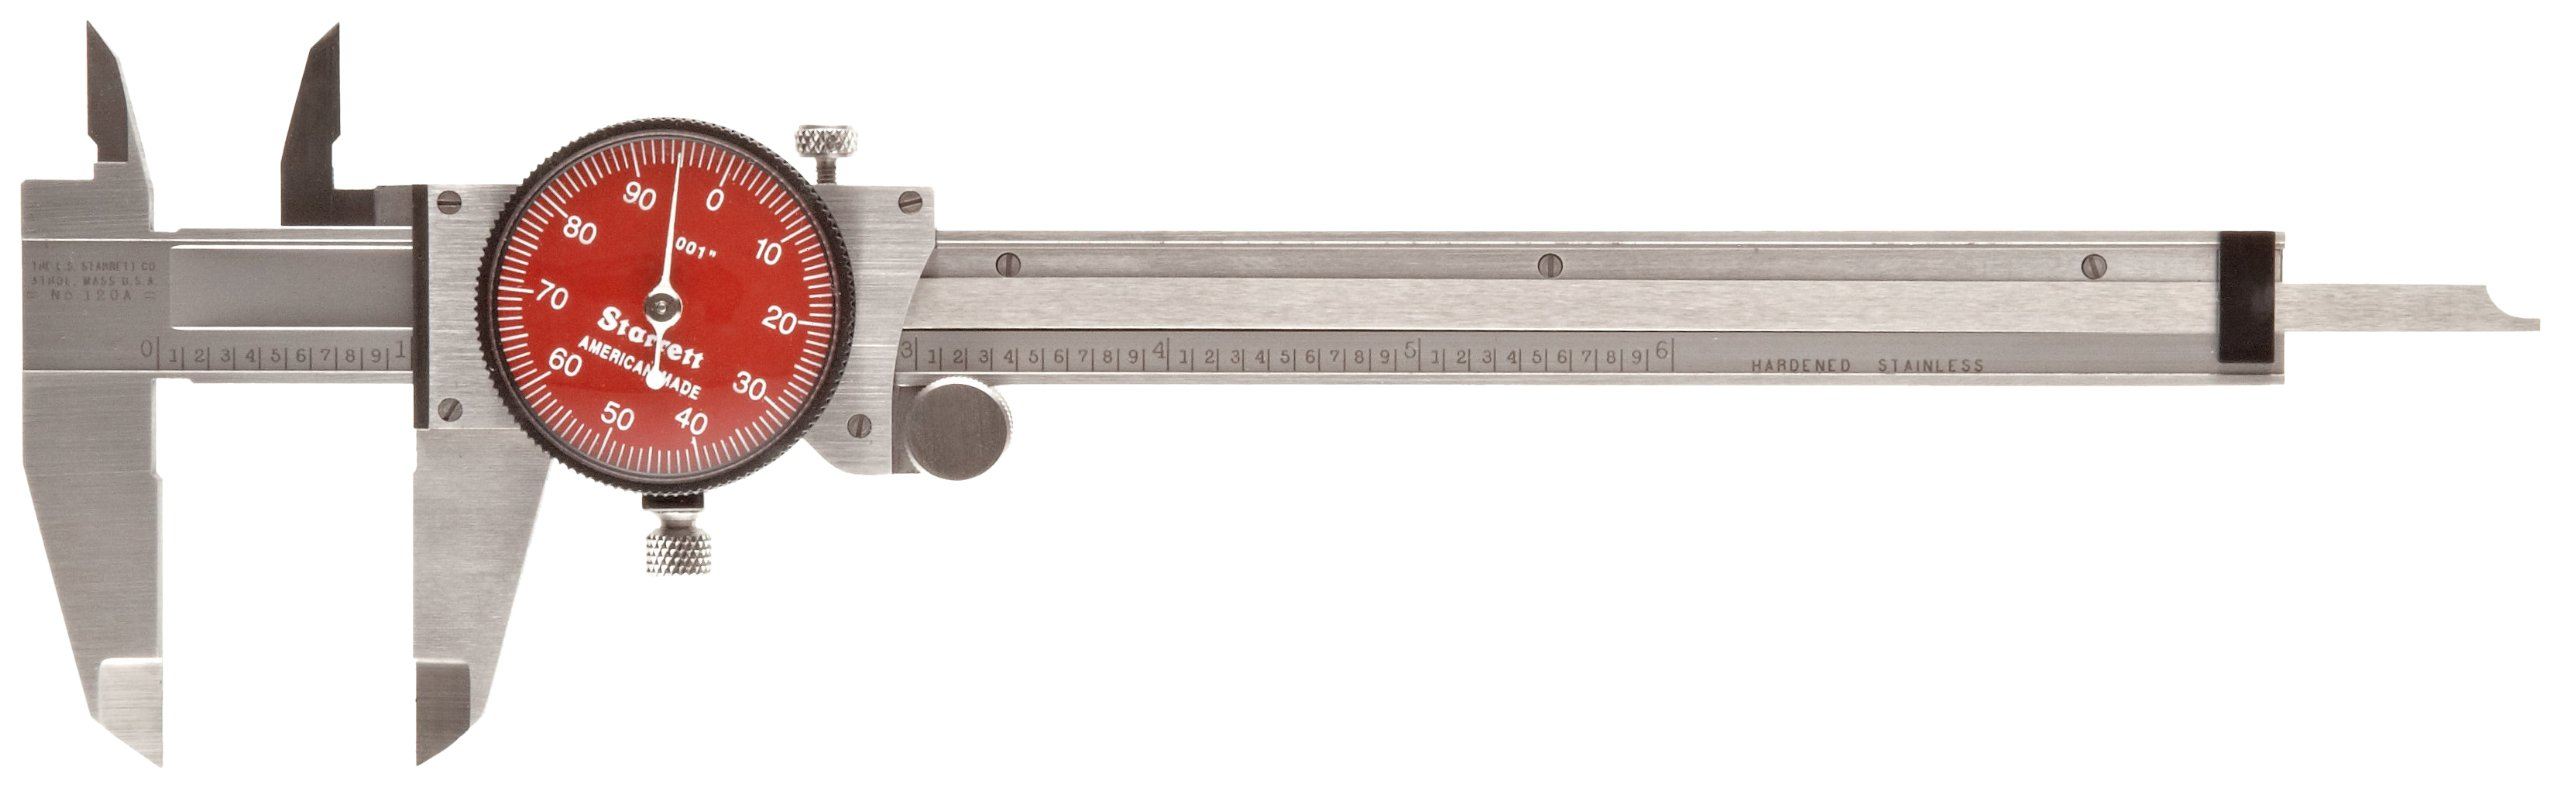 Starrett R120A-6 Dial Caliper, Stainless Steel, Red Face, 0-6'' Range, +/-0.001'' Accuracy, 0.001'' Resolution